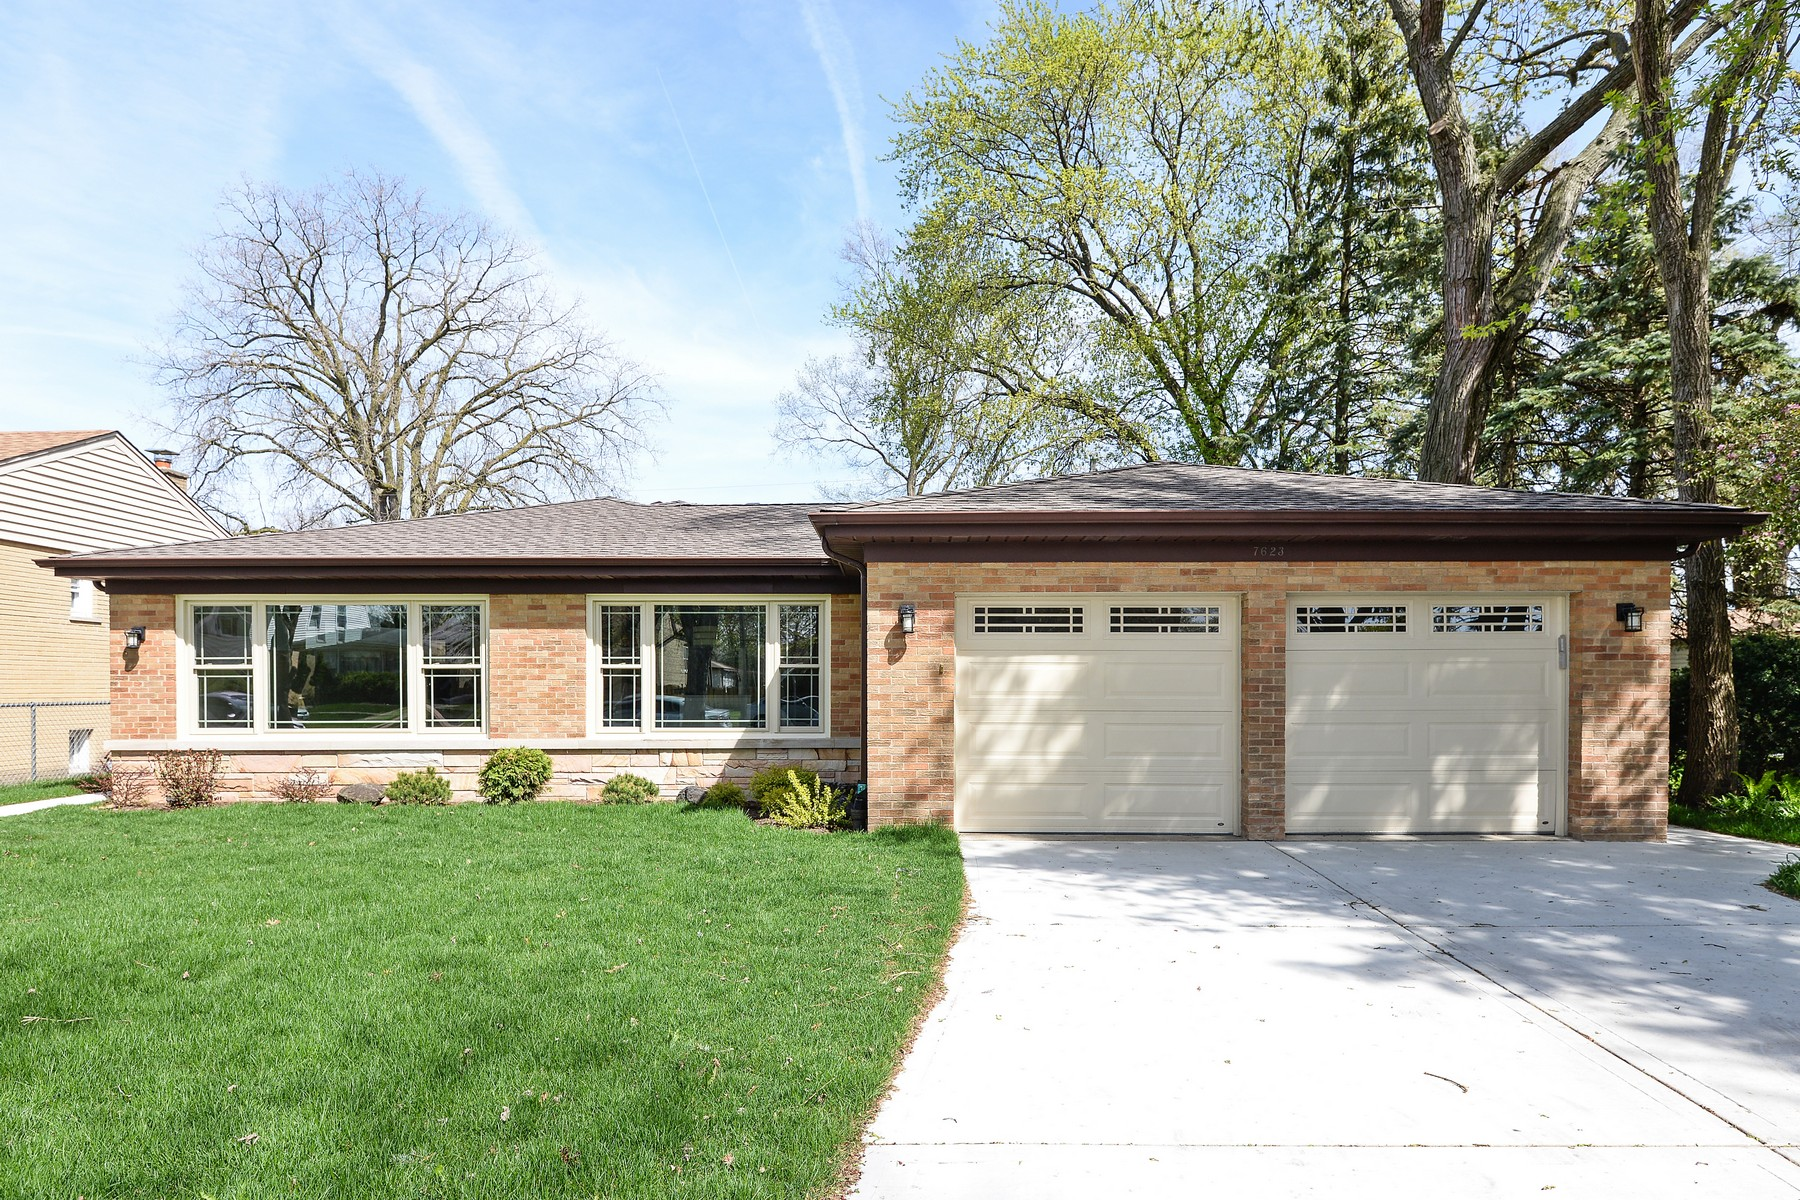 Casa Unifamiliar por un Venta en Amazing High Quality Renovation 7623 Kildare Avenue Skokie, Illinois, 60076 Estados Unidos